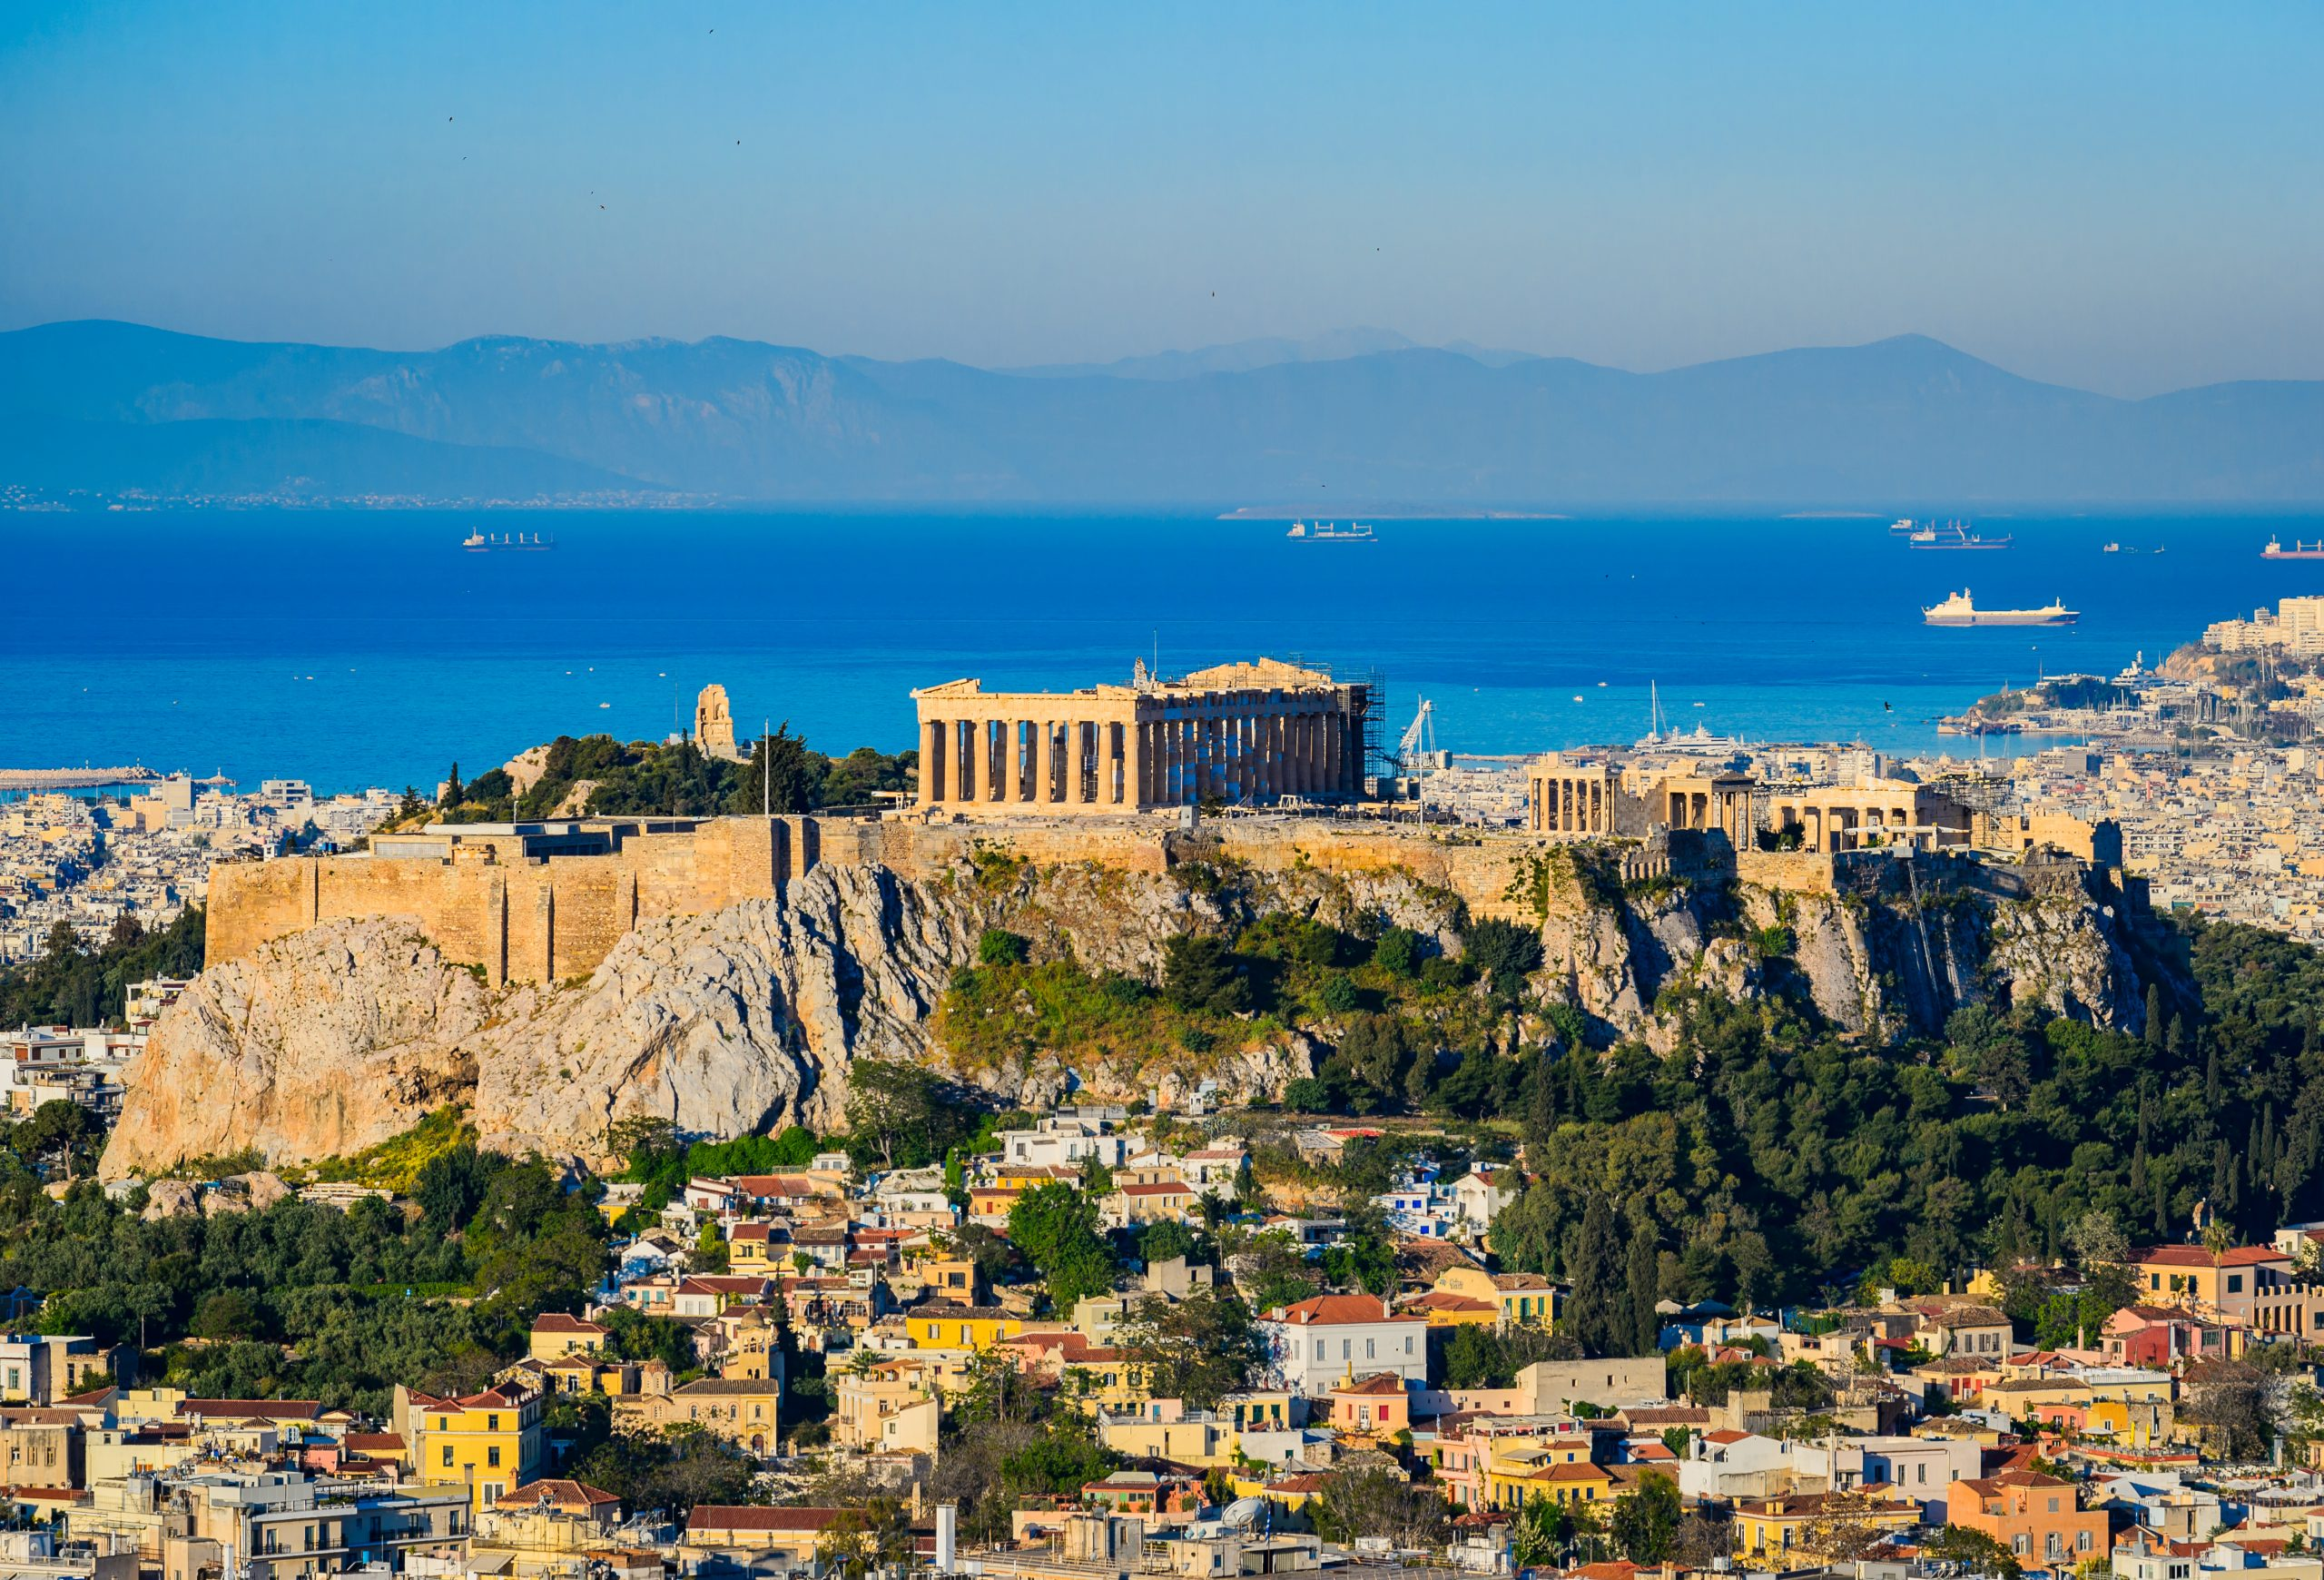 Enjoy A View On The Famous Acropolis During Your Athens Myth Tour